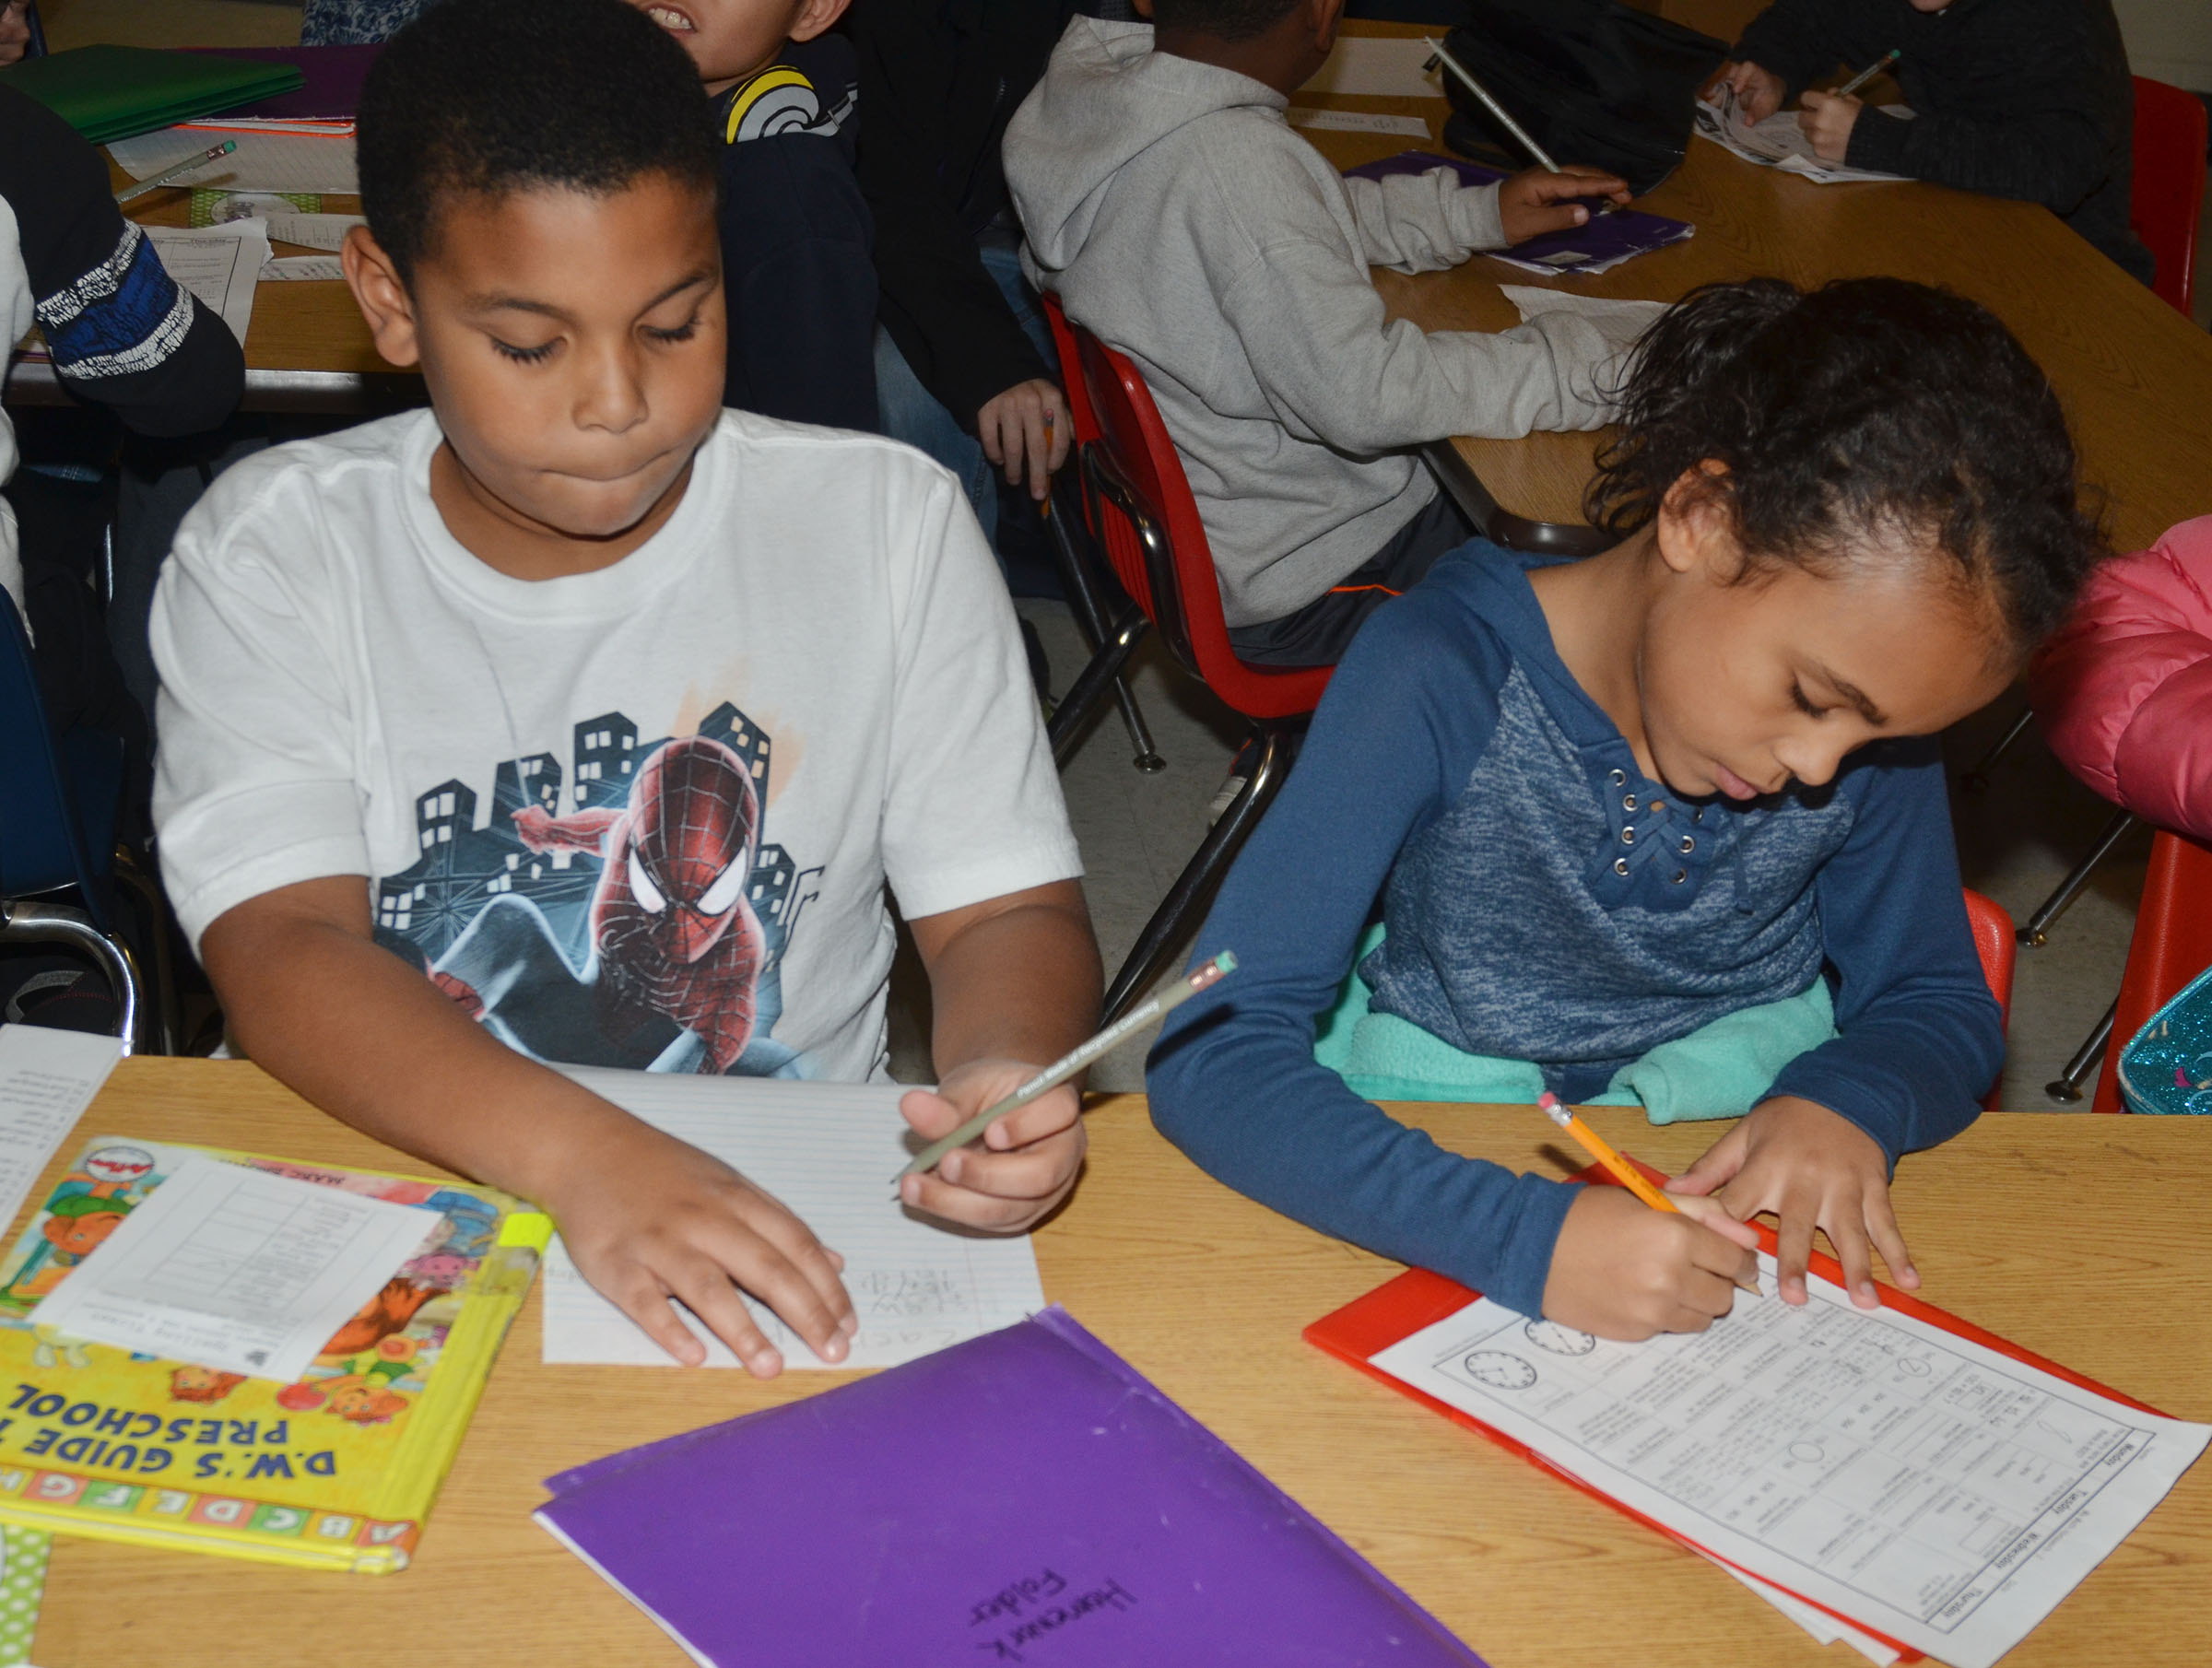 CES second-graders Zaemar Hoskins, at left, and Braelyn Taylor work on their homework.